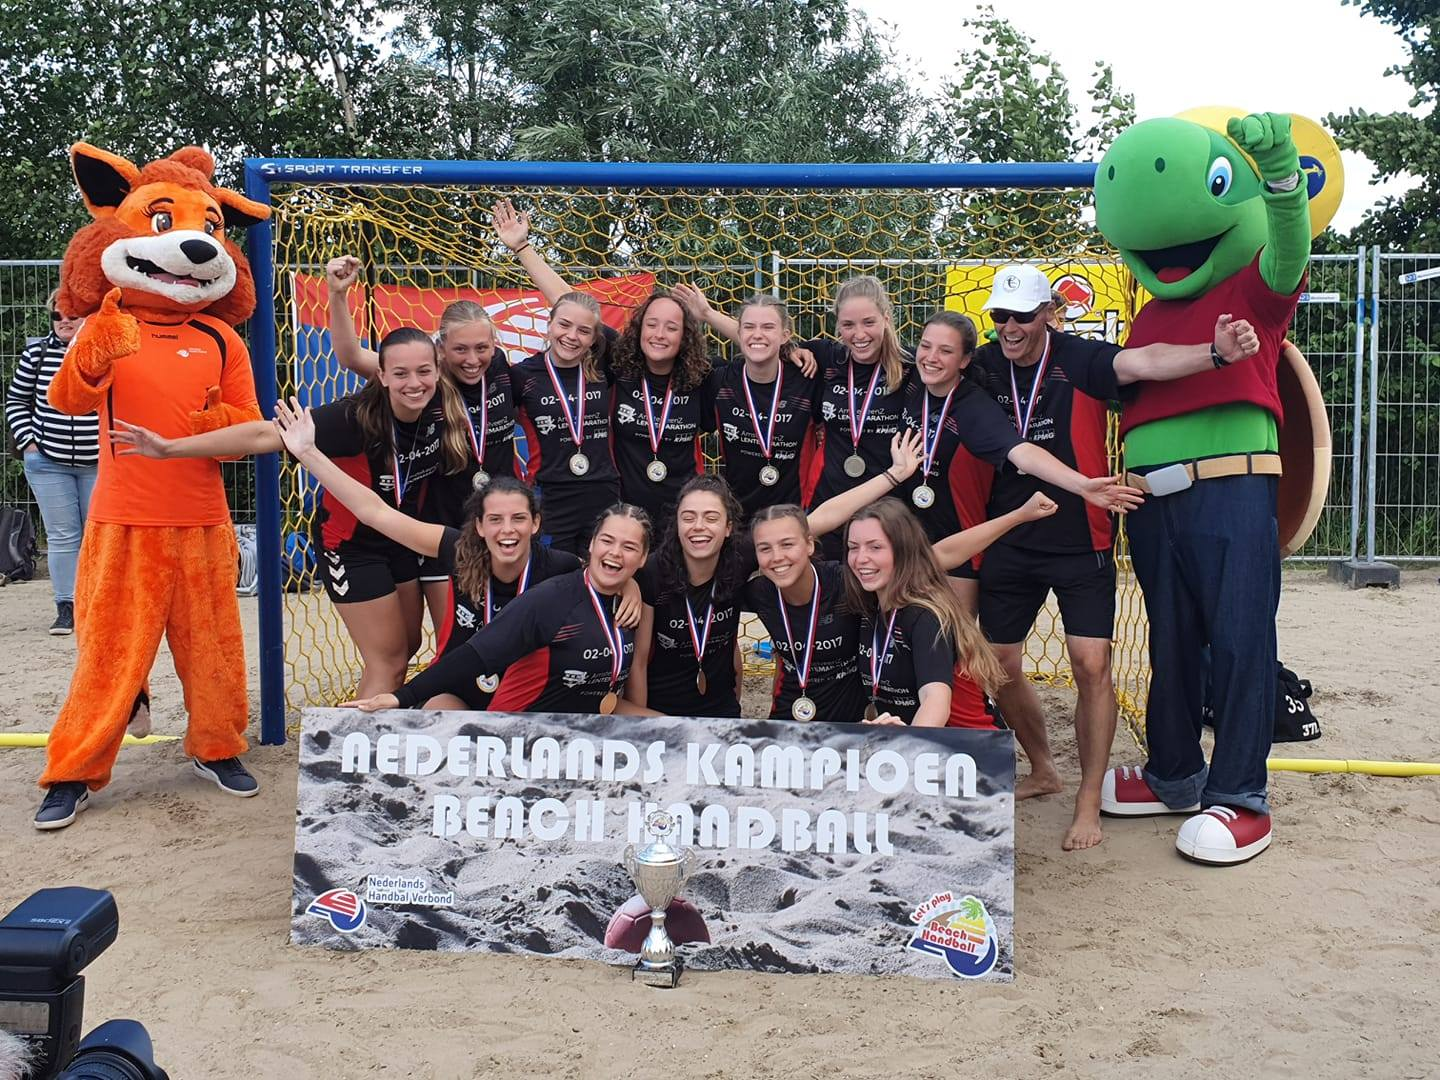 Beach Even Anders Nederlands Kampioen bij de Dames A